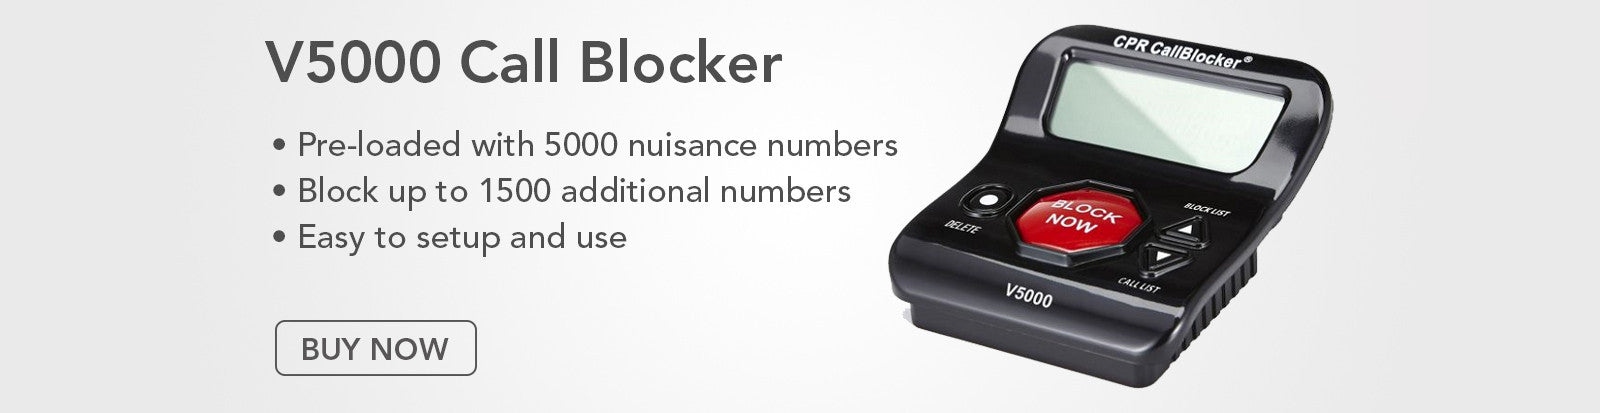 V5000 Call Blocker